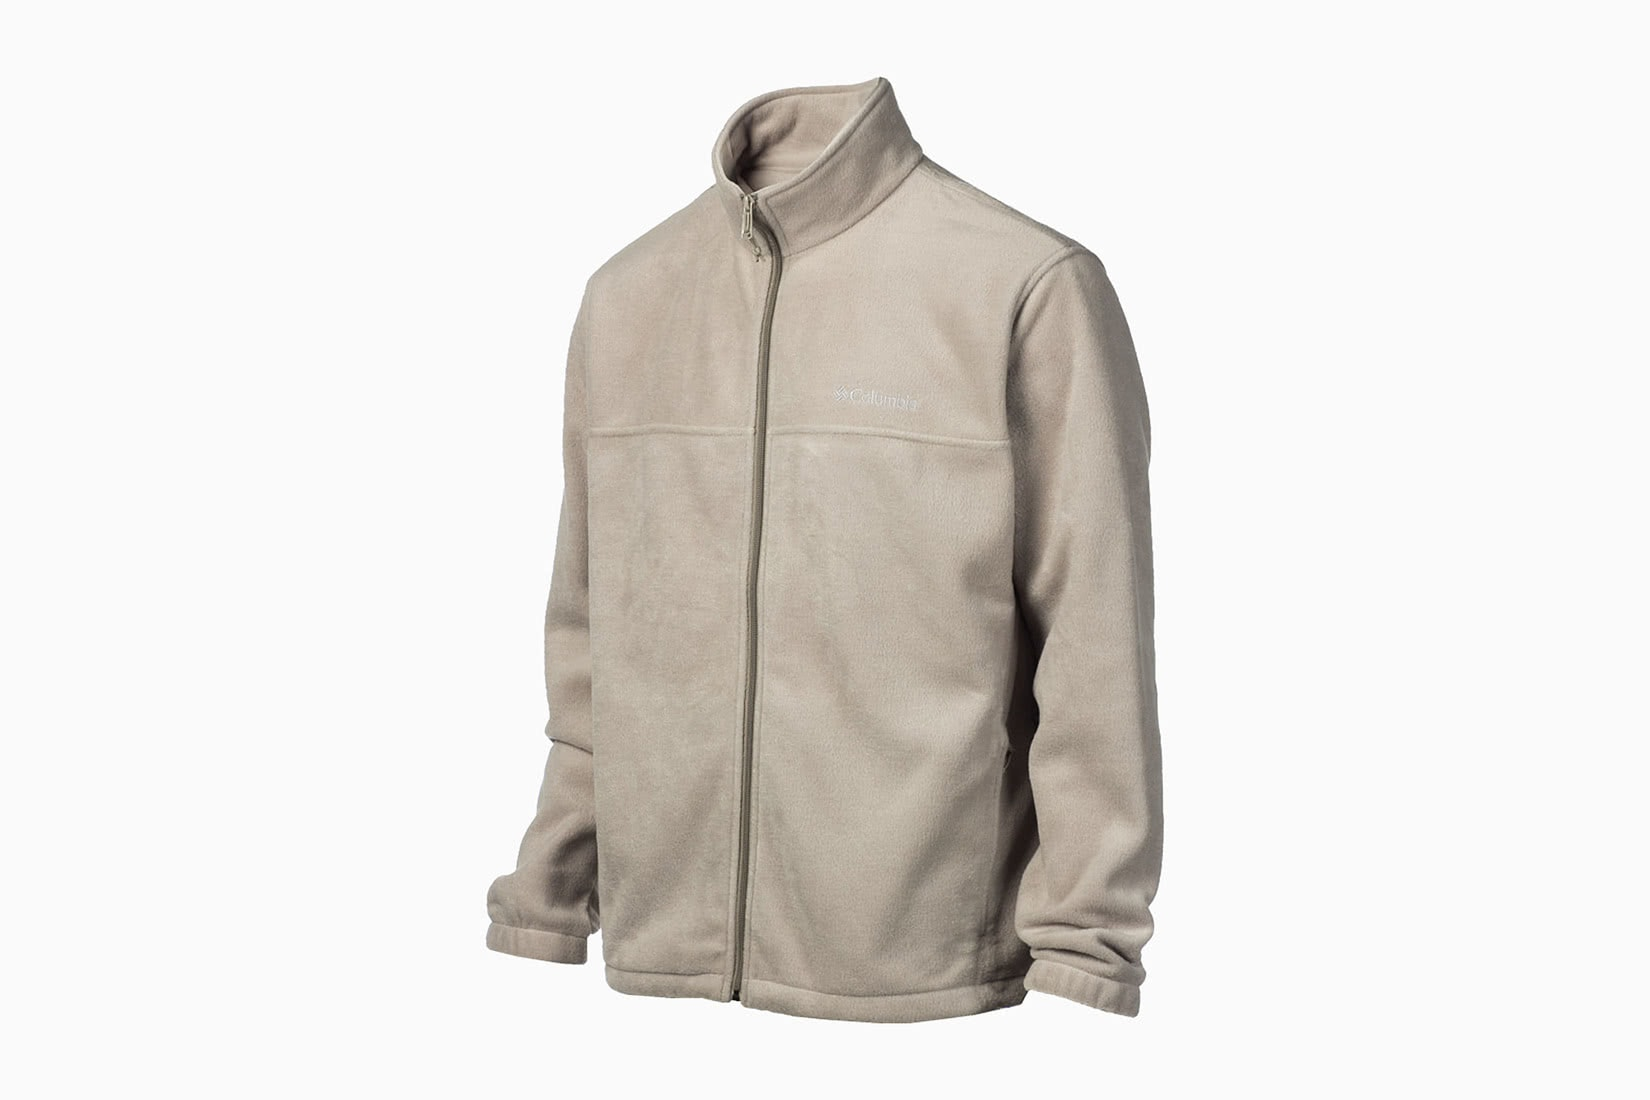 best men bomber jacket fleece Columbia review - Luxe Digital